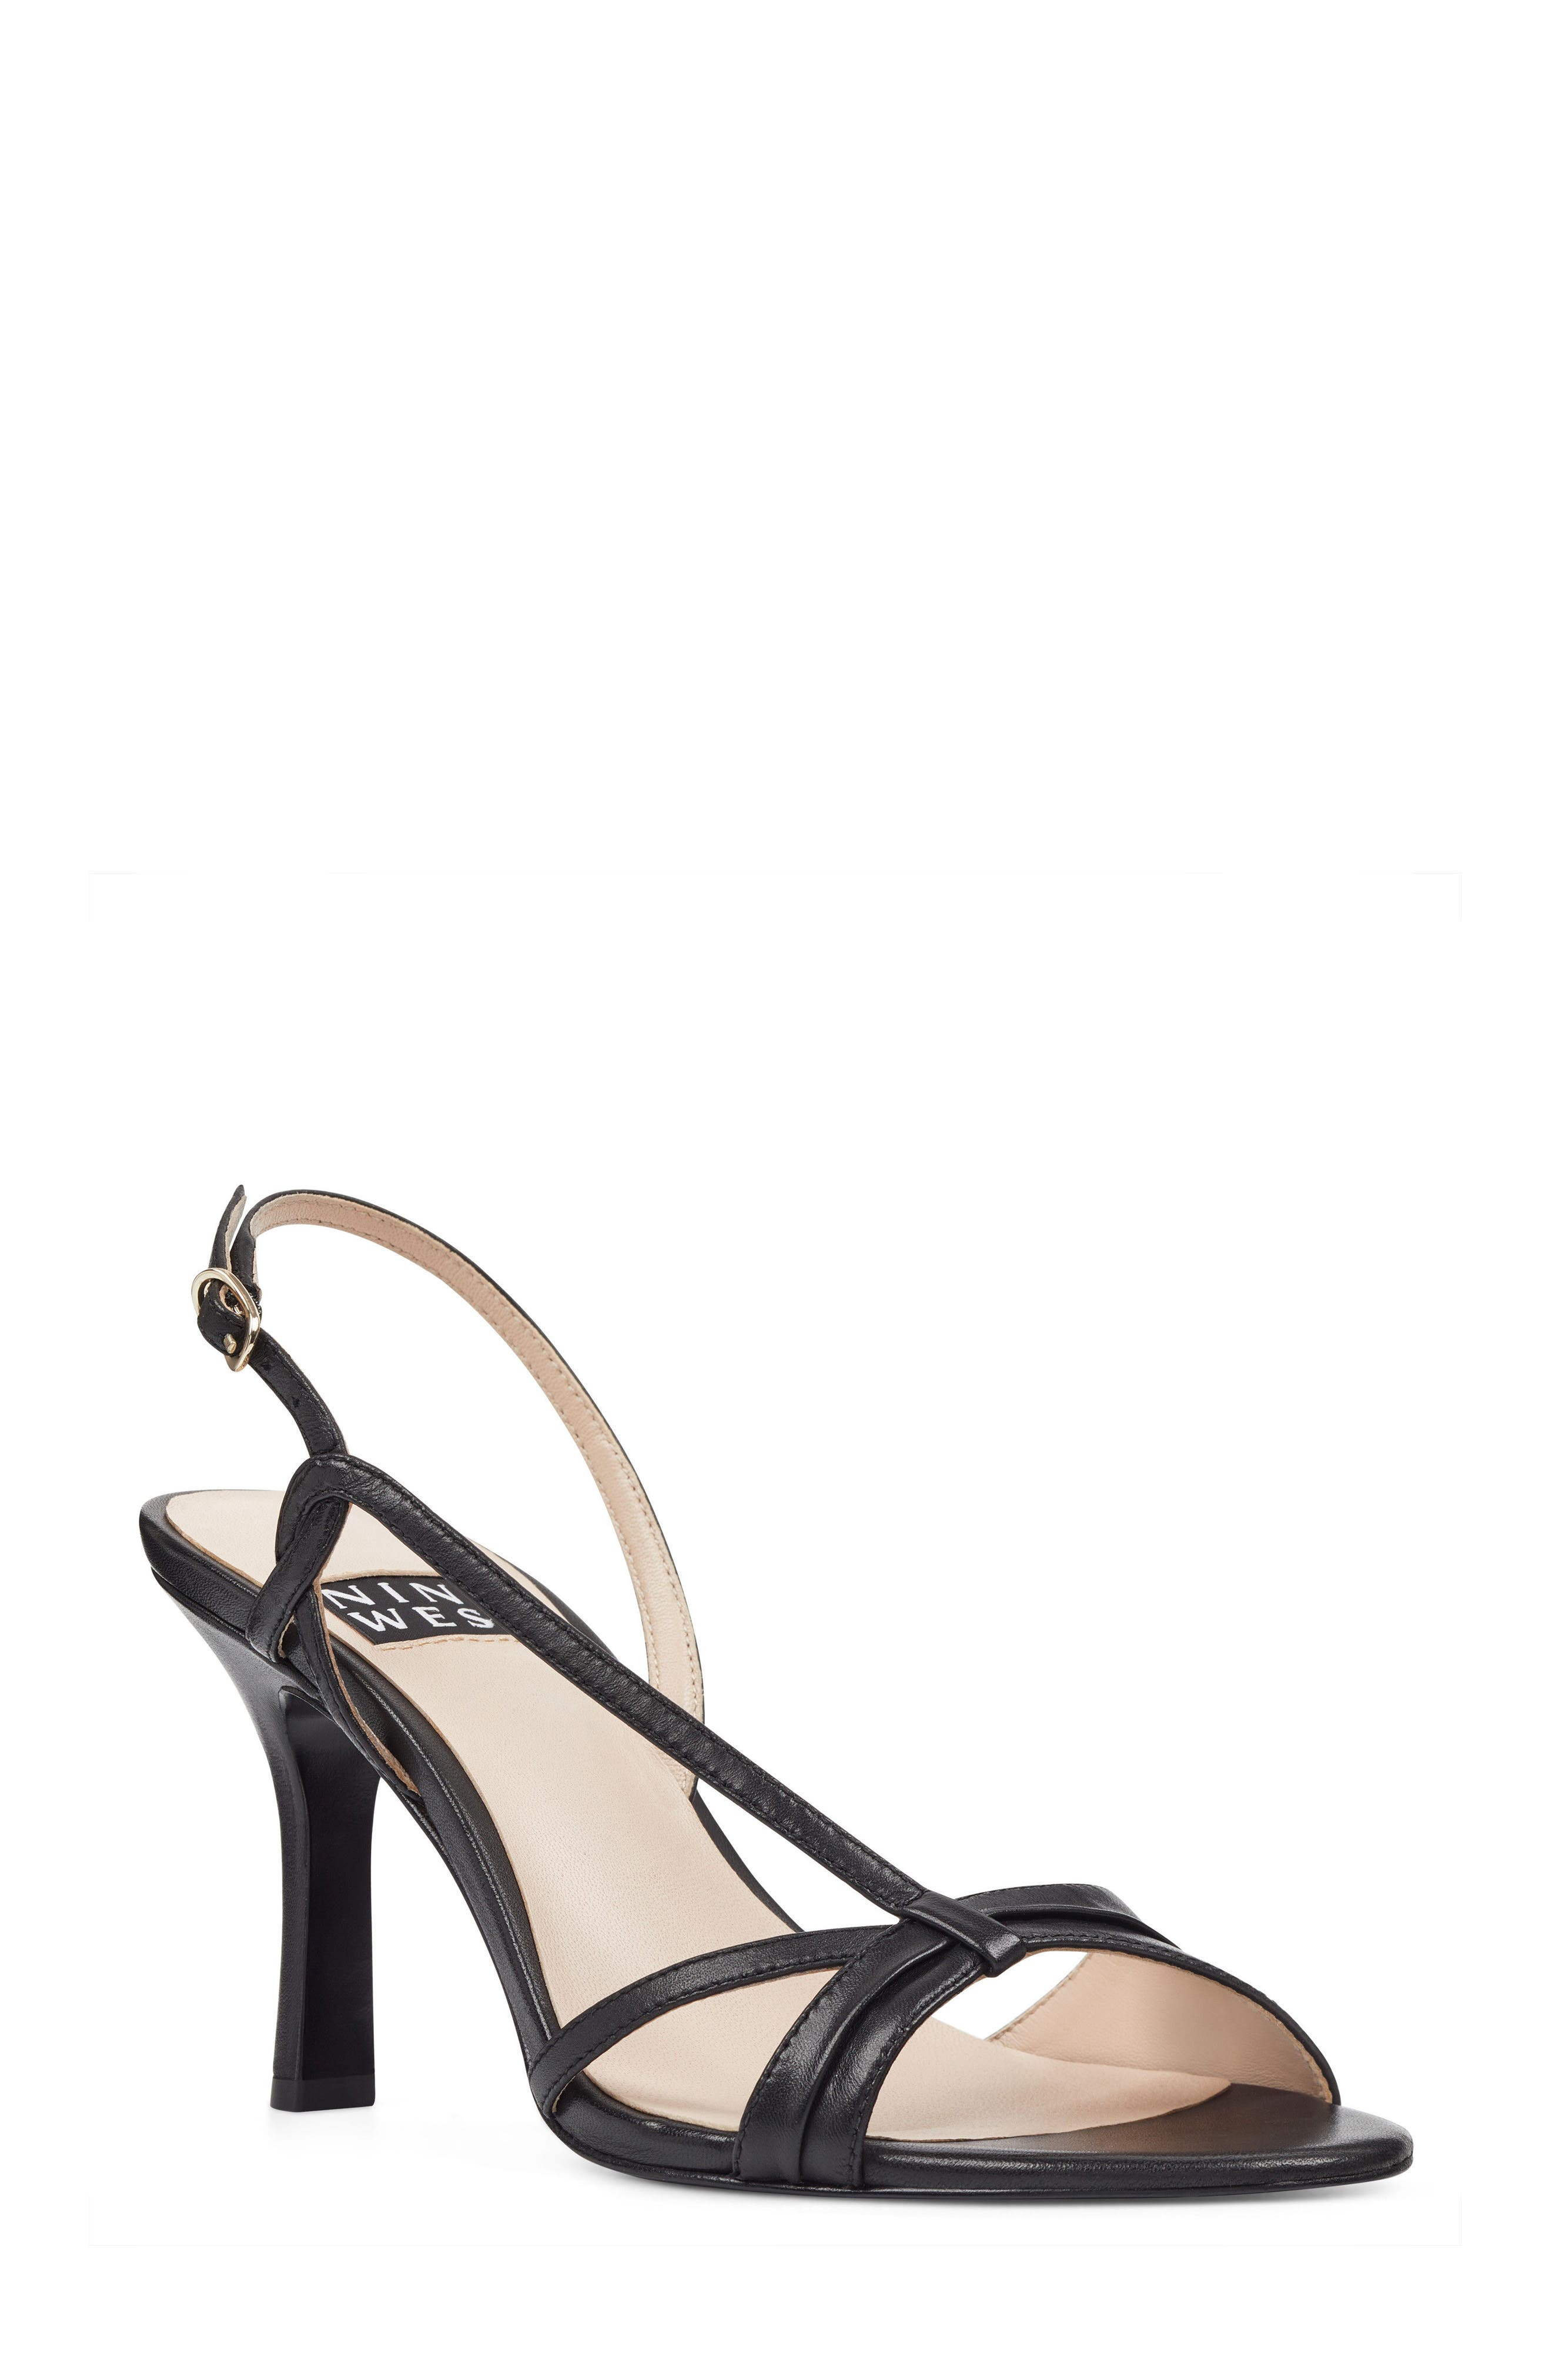 Accolia - 40th Anniversary Capsule Collection Sandal,                         Main,                         color, BLACK LEATHER